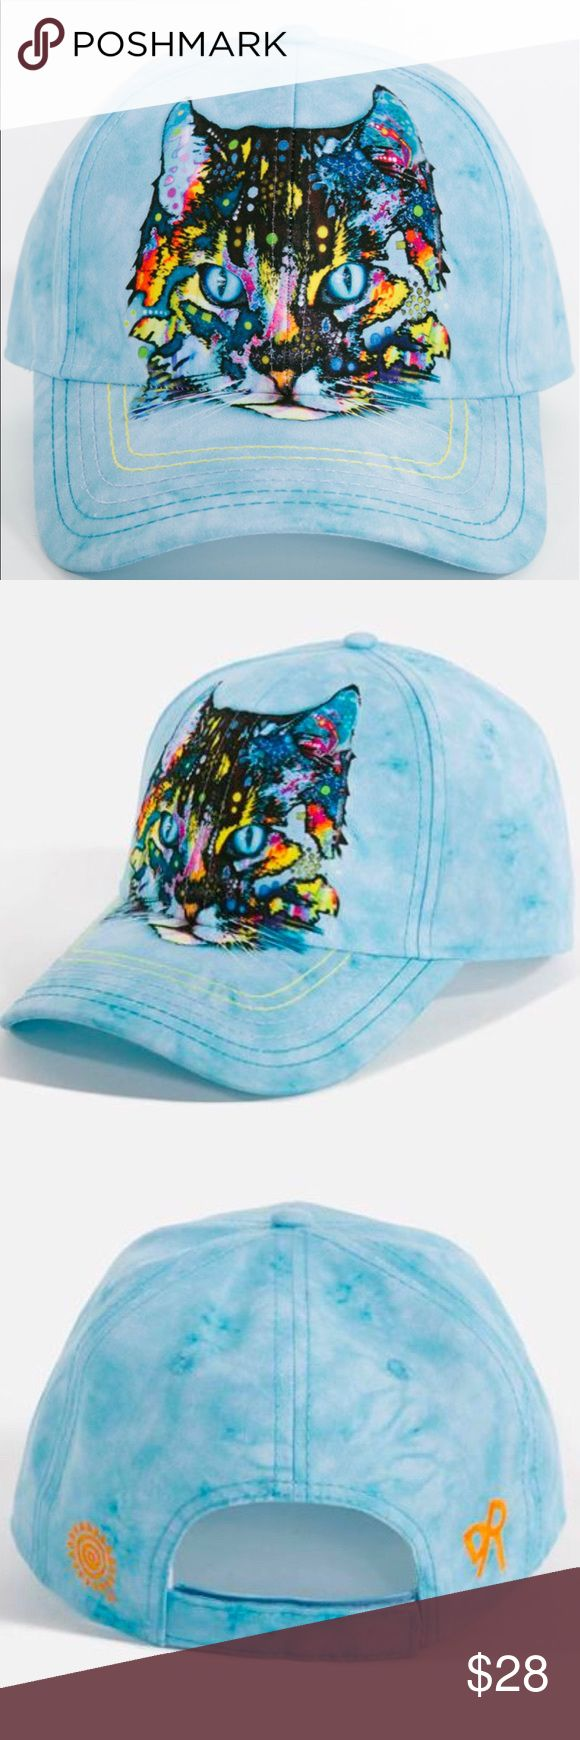 Hypnos Cat Hat by Dean Russo - O/S Fits Most Assembled from 100% Polyester Velcro Adjustable Strap Low Profile, Six Panel Construction Tri-Colored Stitching on visor Embroidered Dean Russo logo on the back Responsibly sourced overseas Produced using sustainable environmental and social practices One size fits most Dean Russo Accessories Hats